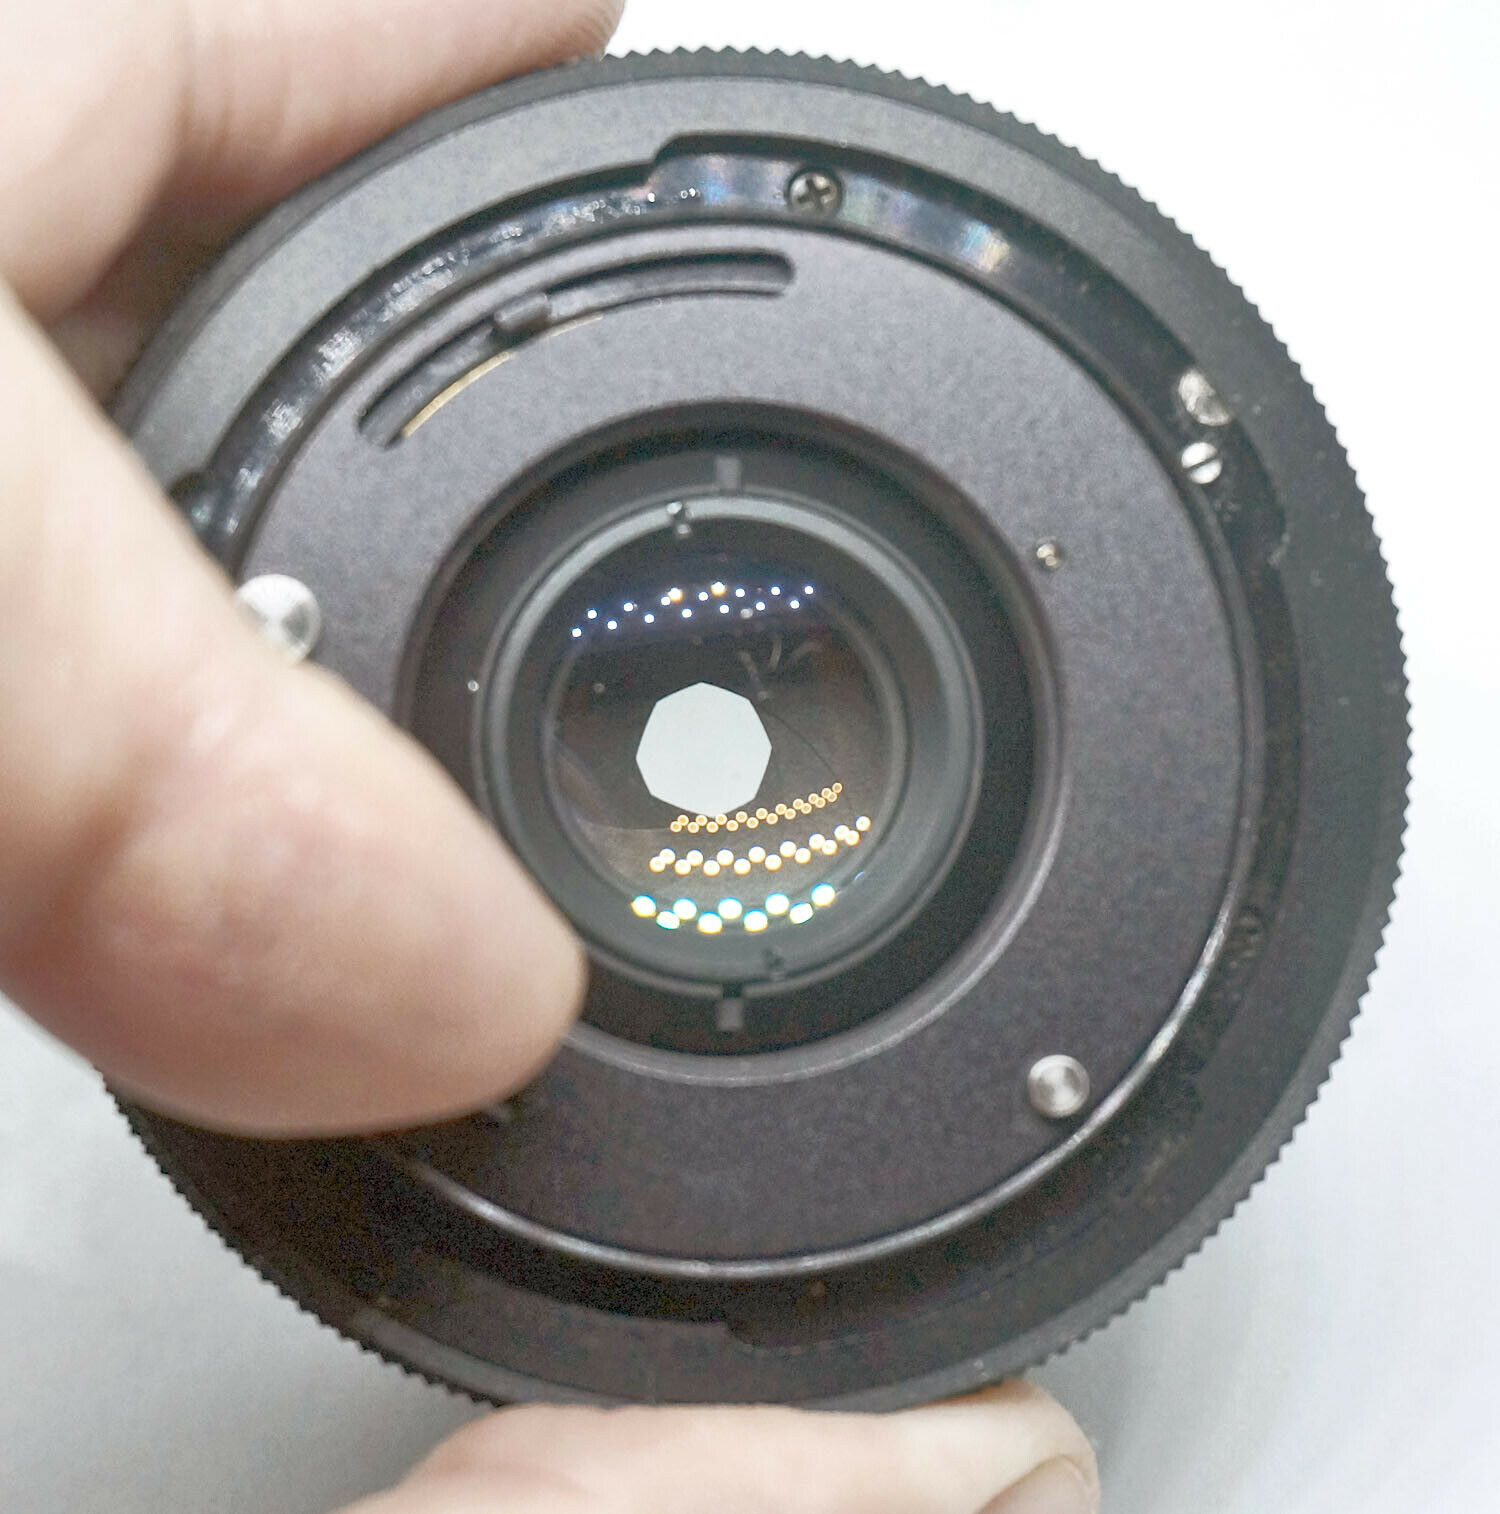 Wide LENS For SLR Camera With Canon FD Mount PROMASTER 2.8-28 VG PHL0028  - $45.00